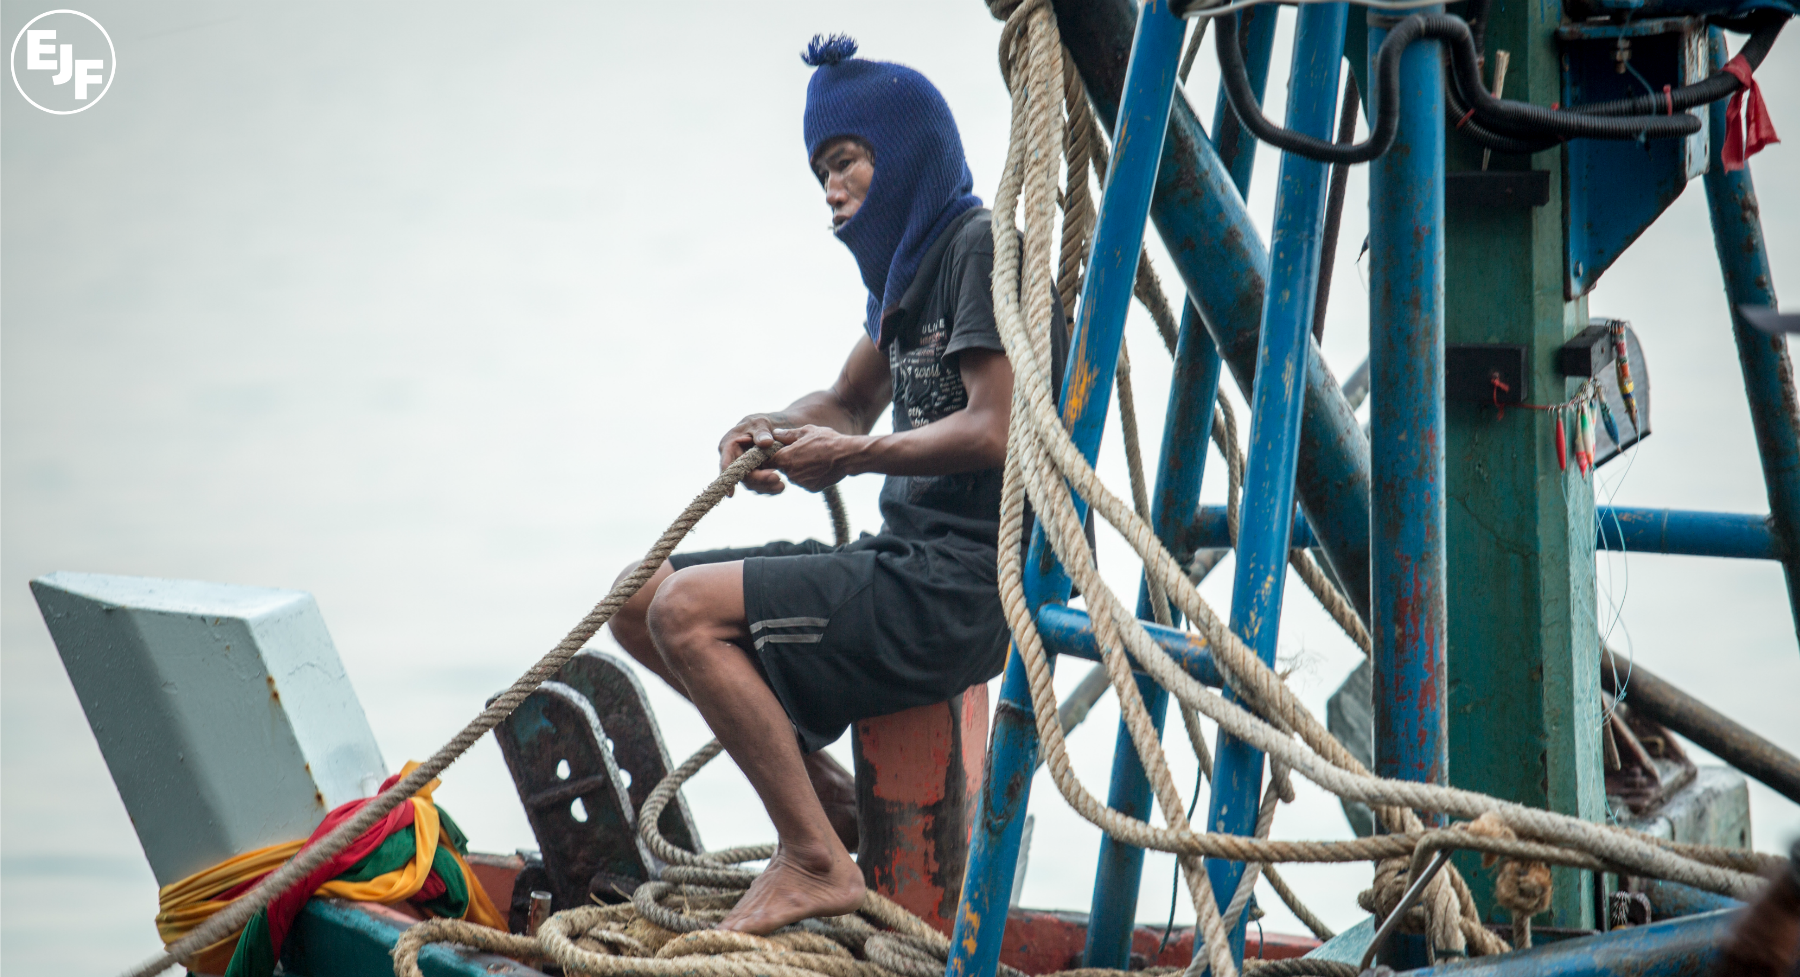 'Still at sea': The forgotten men forced to work aboard Thailand's 'pirate' fishing vessels